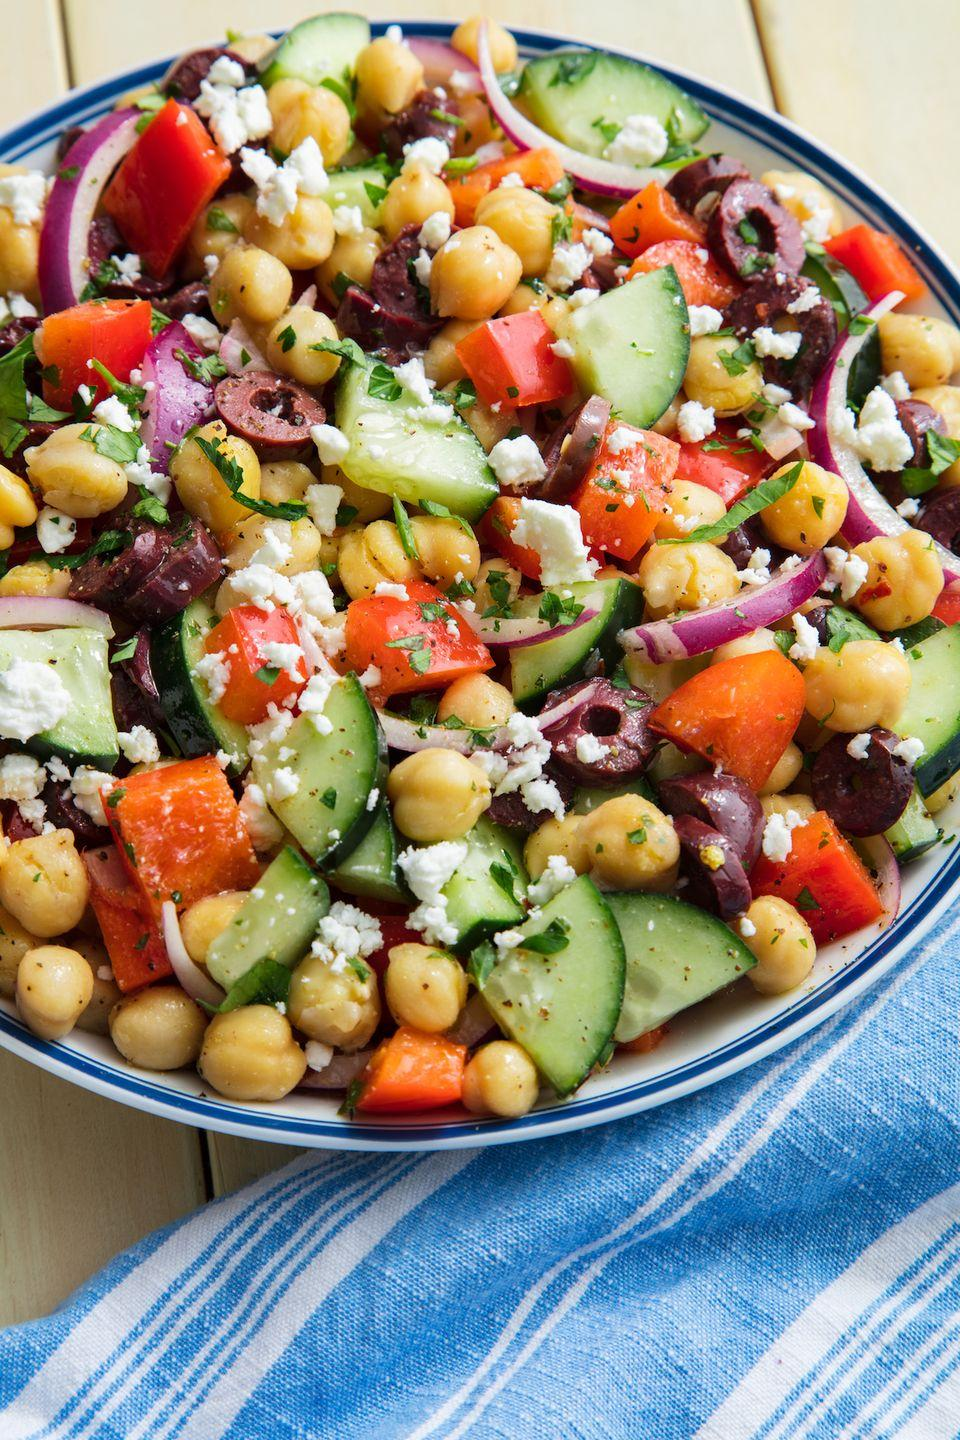 """<p>Get transported to the Mediterranean. </p><p>Get the recipe from <a href=""""https://www.delish.com/cooking/recipe-ideas/a19885314/mediterranean-chickpea-salad-recipe/"""" rel=""""nofollow noopener"""" target=""""_blank"""" data-ylk=""""slk:Delish"""" class=""""link rapid-noclick-resp"""">Delish</a>.</p><p><a class=""""link rapid-noclick-resp"""" href=""""https://www.amazon.com/Wusthof-Classic-6-Inch-Chefs-Knife/dp/B00009ZK07?tag=syn-yahoo-20&ascsubtag=%5Bartid%7C1782.g.3034%5Bsrc%7Cyahoo-us"""" rel=""""nofollow noopener"""" target=""""_blank"""" data-ylk=""""slk:BUY NOW"""">BUY NOW</a> <strong><em>Wusthof Chef's Knife, $60, amazon.com</em></strong><br></p>"""